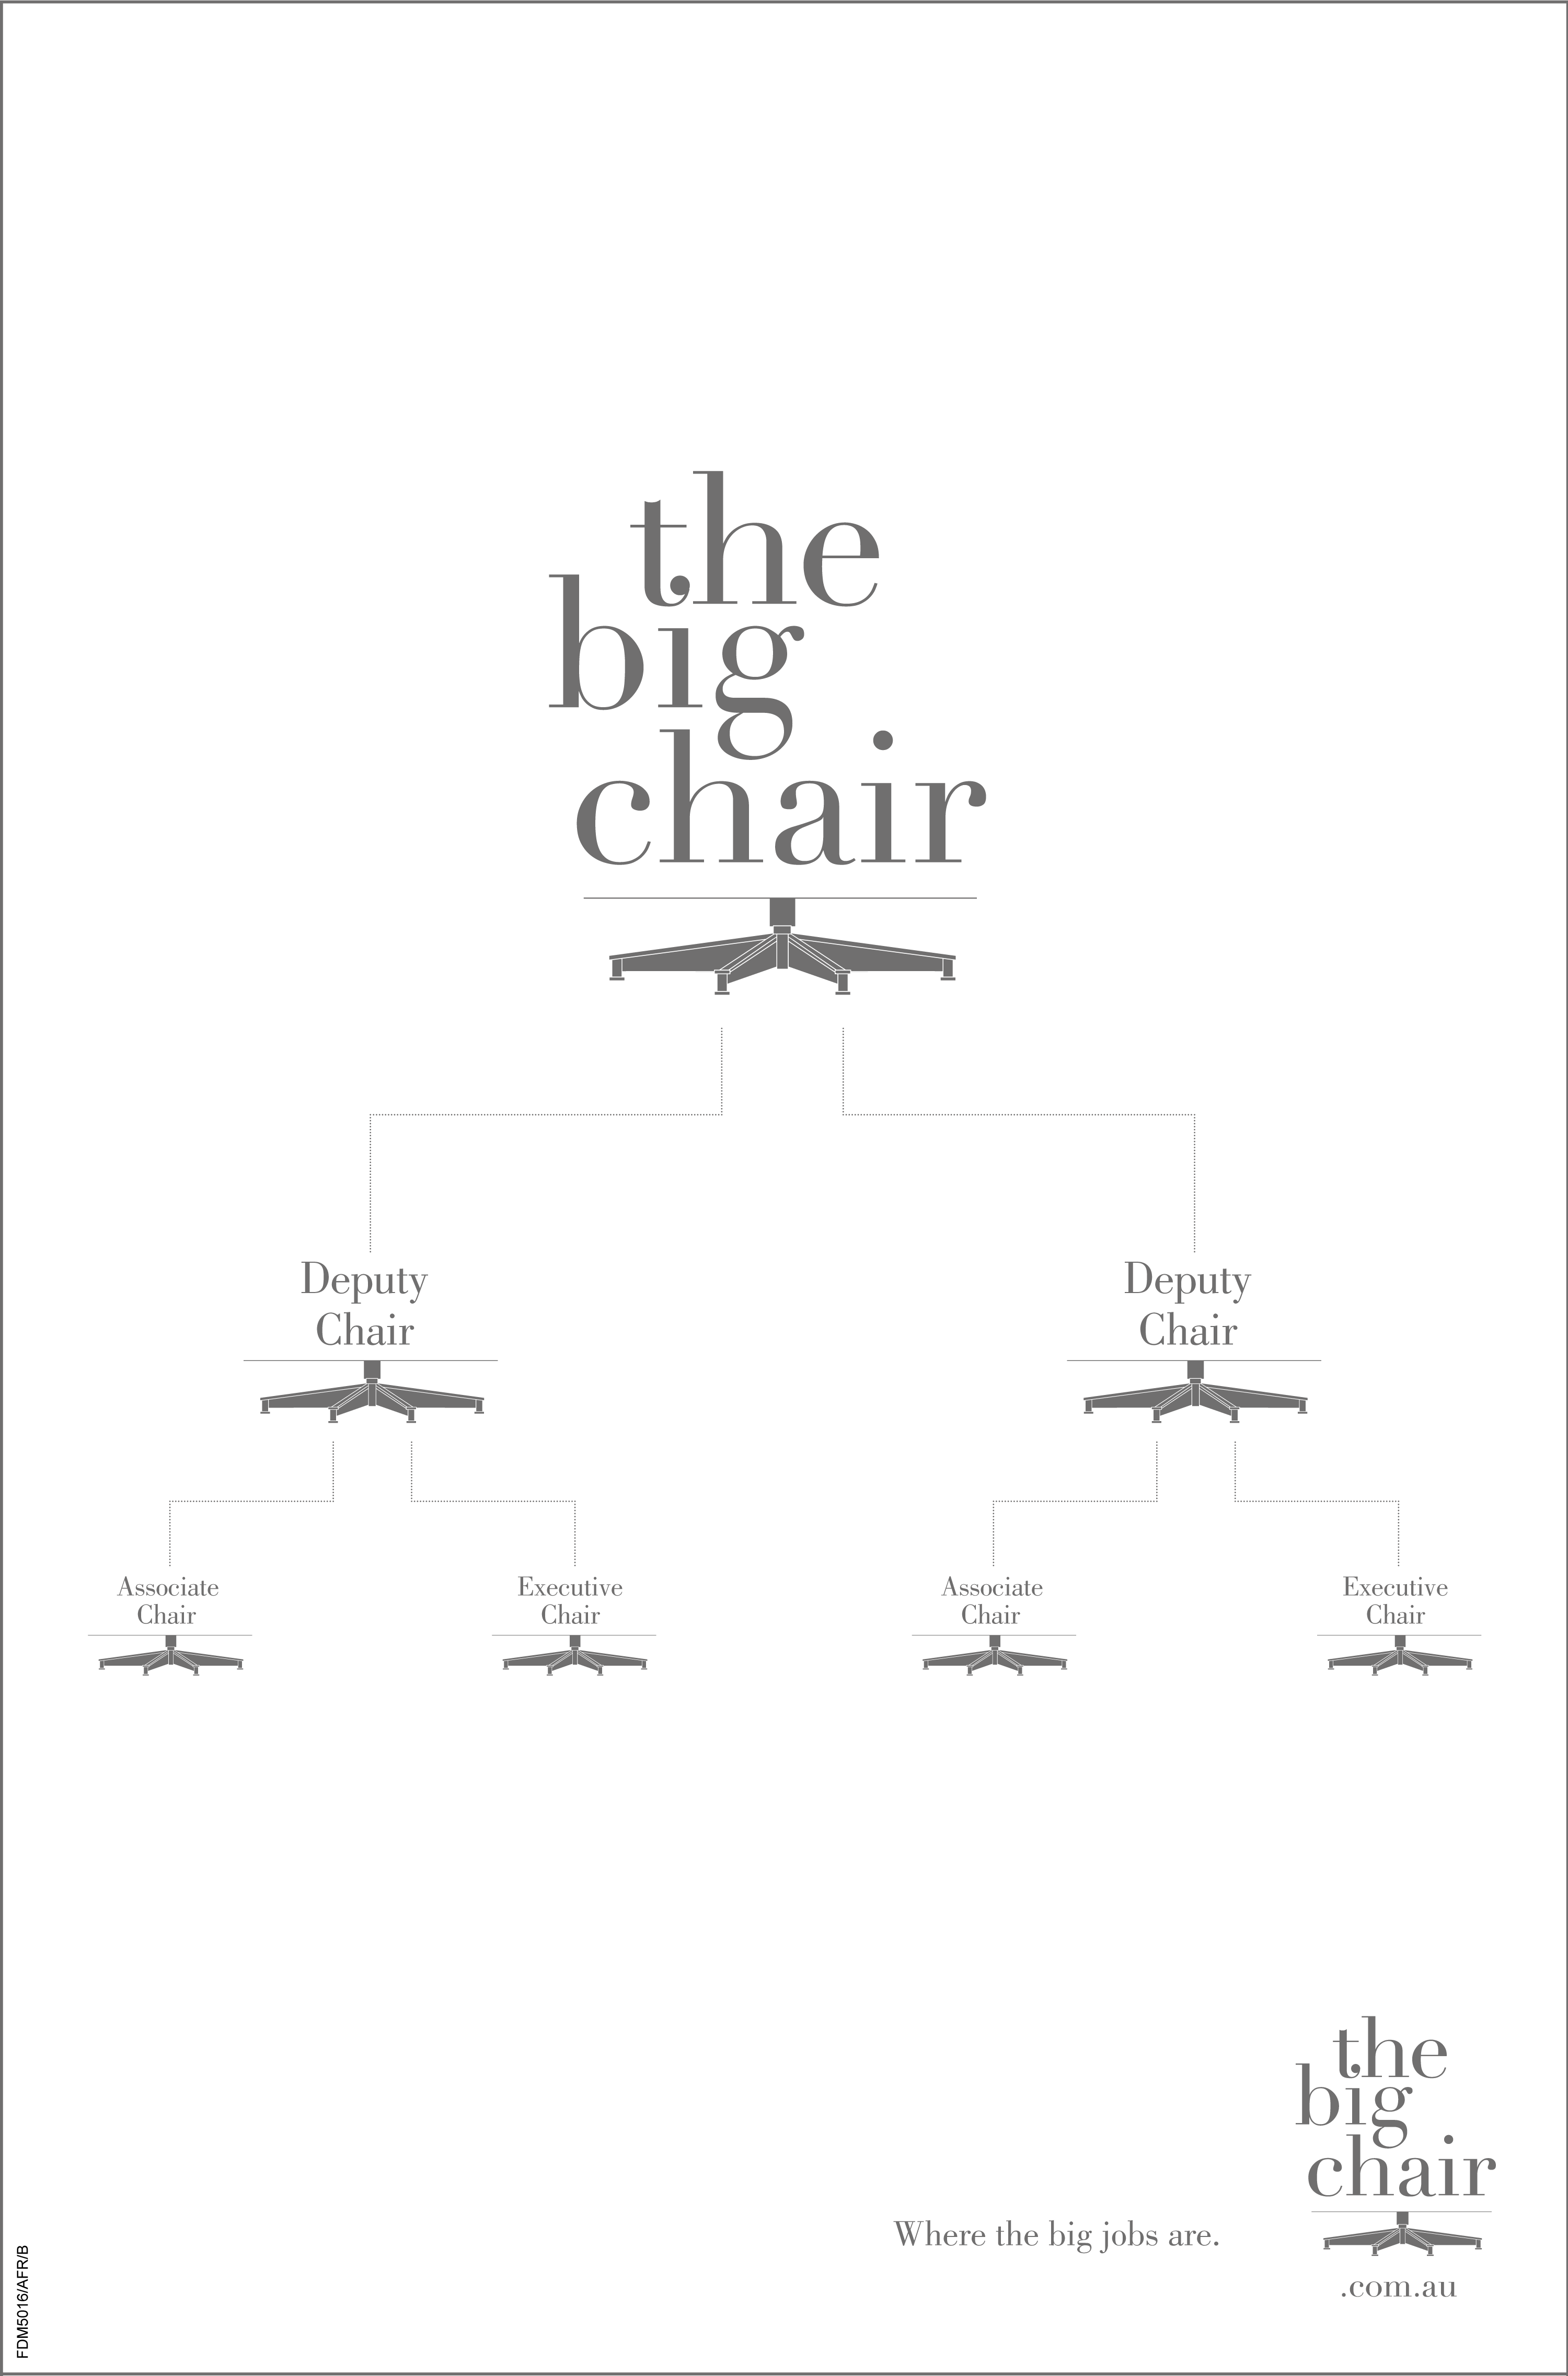 The Big Chair Big Jobs campaign is a premium print campaign that ran in the most prestigious publications in Australia. It was designed to appeal to ambitious, discerning and alpha professionals. It uses simple typography, minimal design, and simplicity to attract bold candidates. I worked under Jess Harold as an art director on this project.